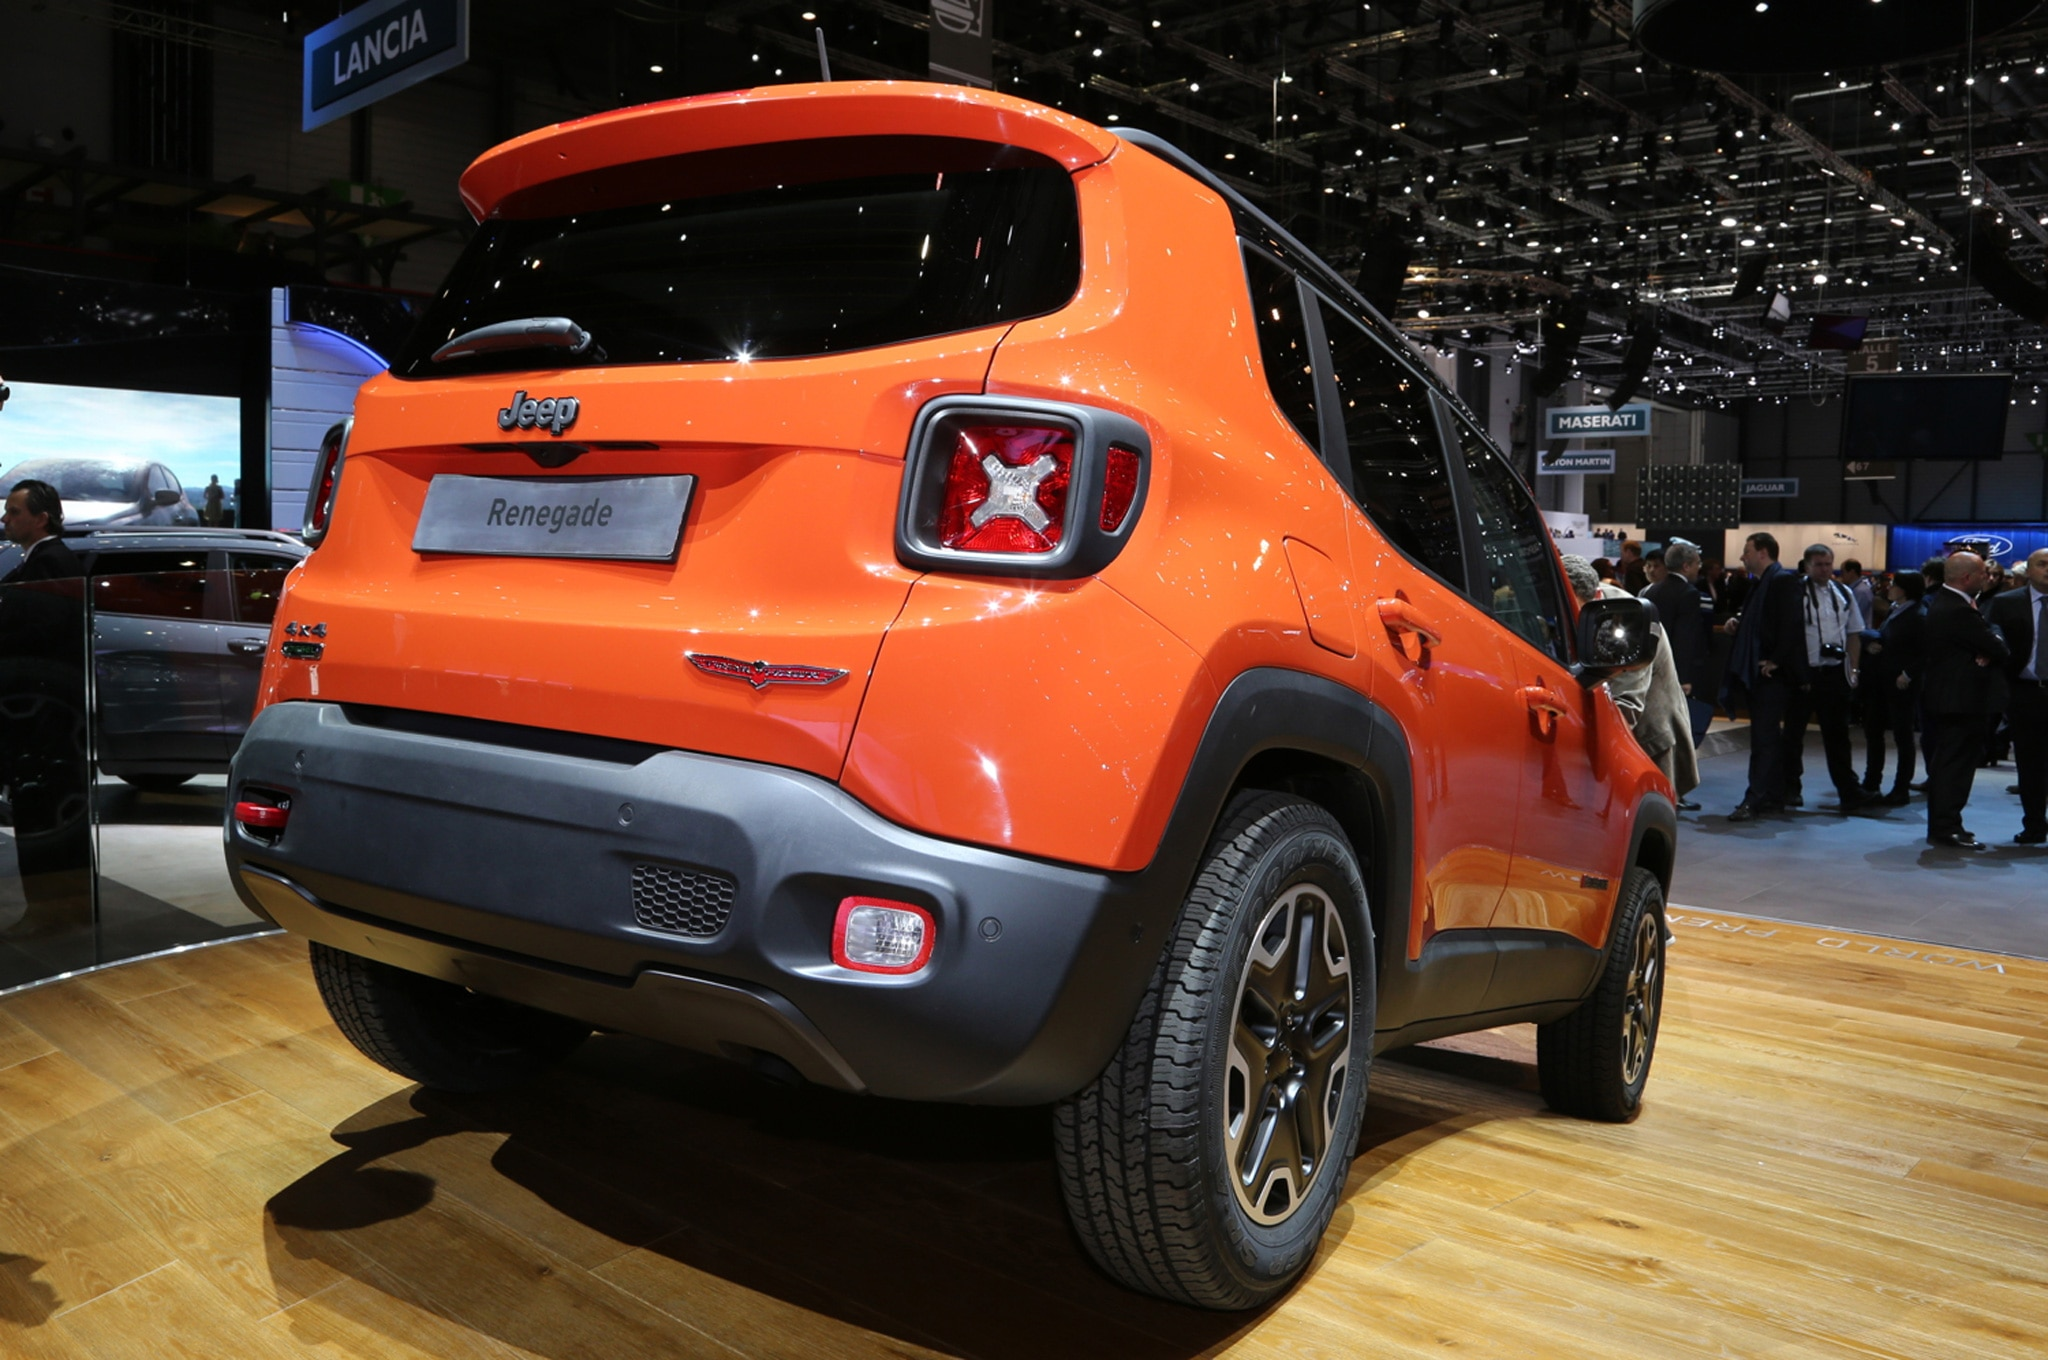 2015 Jeep Renegade Trailhawk show floor rear view decline